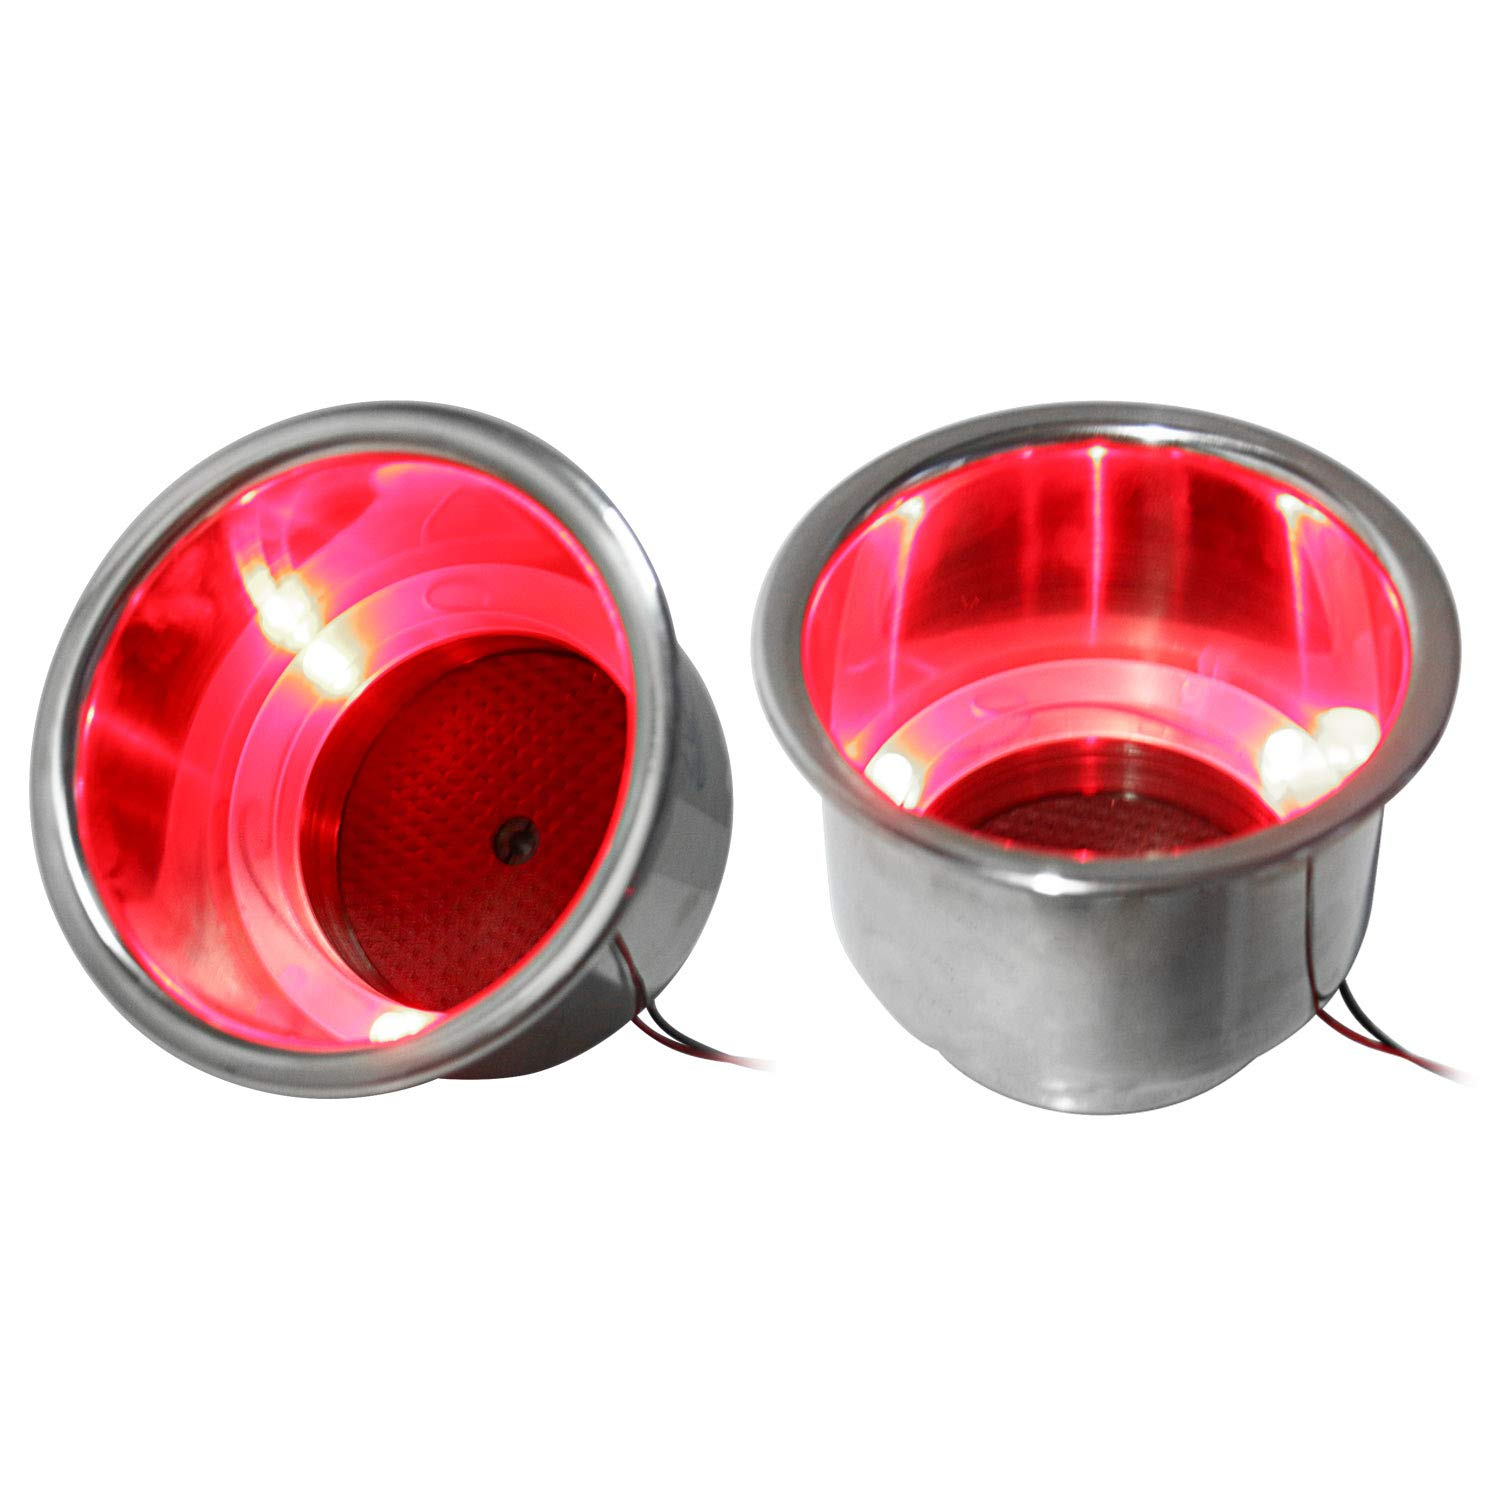 shanghai Ltd Amarine-made 2 Pieces of 3 Red LED Stainless Steel Cup Drink Holder with Drain Marine Boat Rv Camper Alfa Marine Co